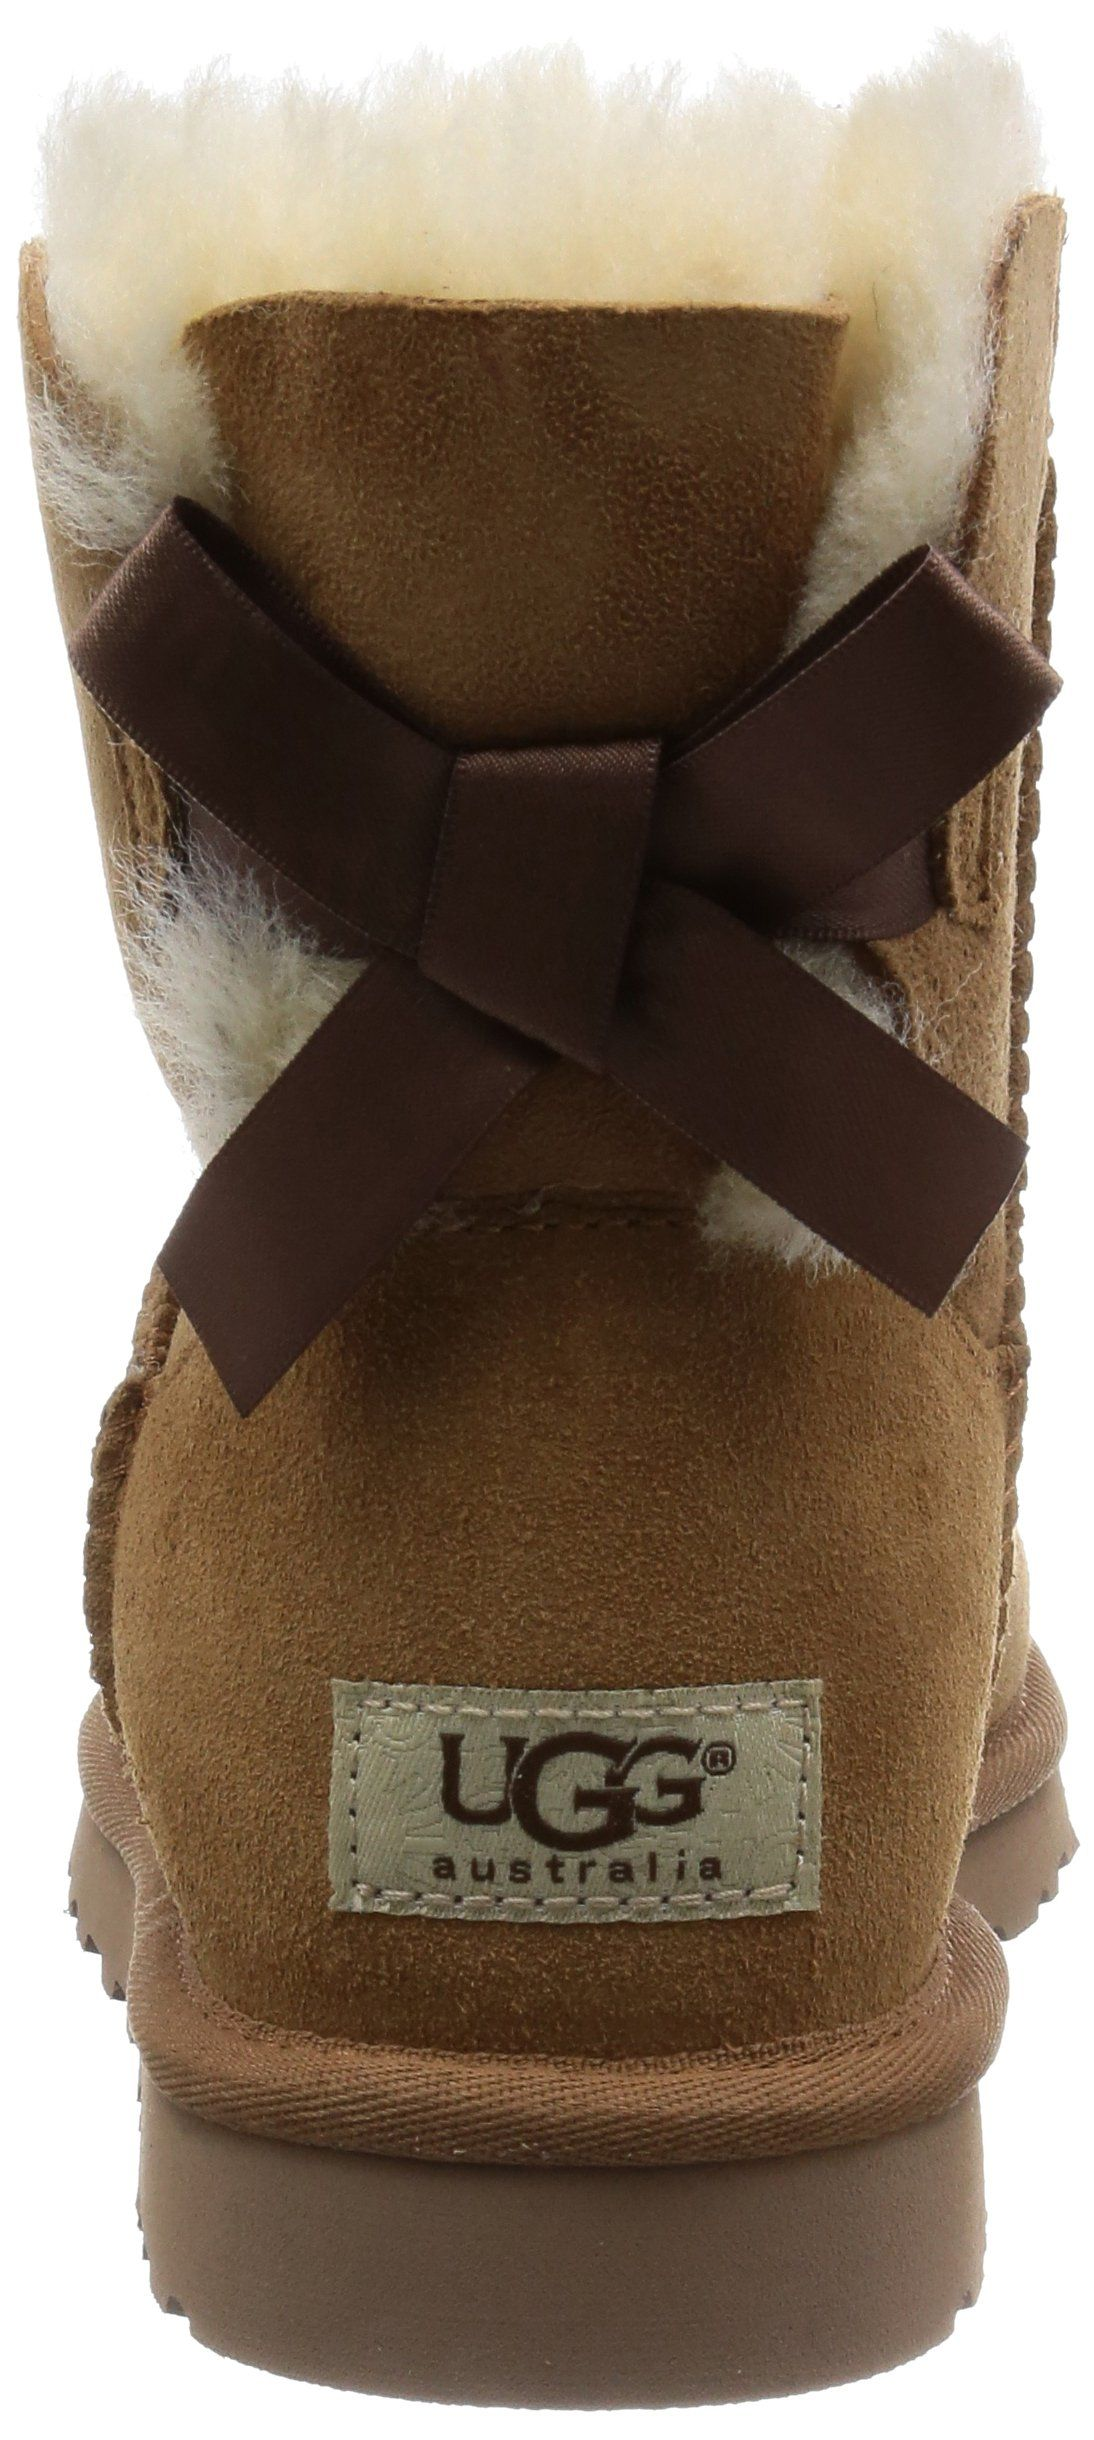 amazon stivali ugg waterproof